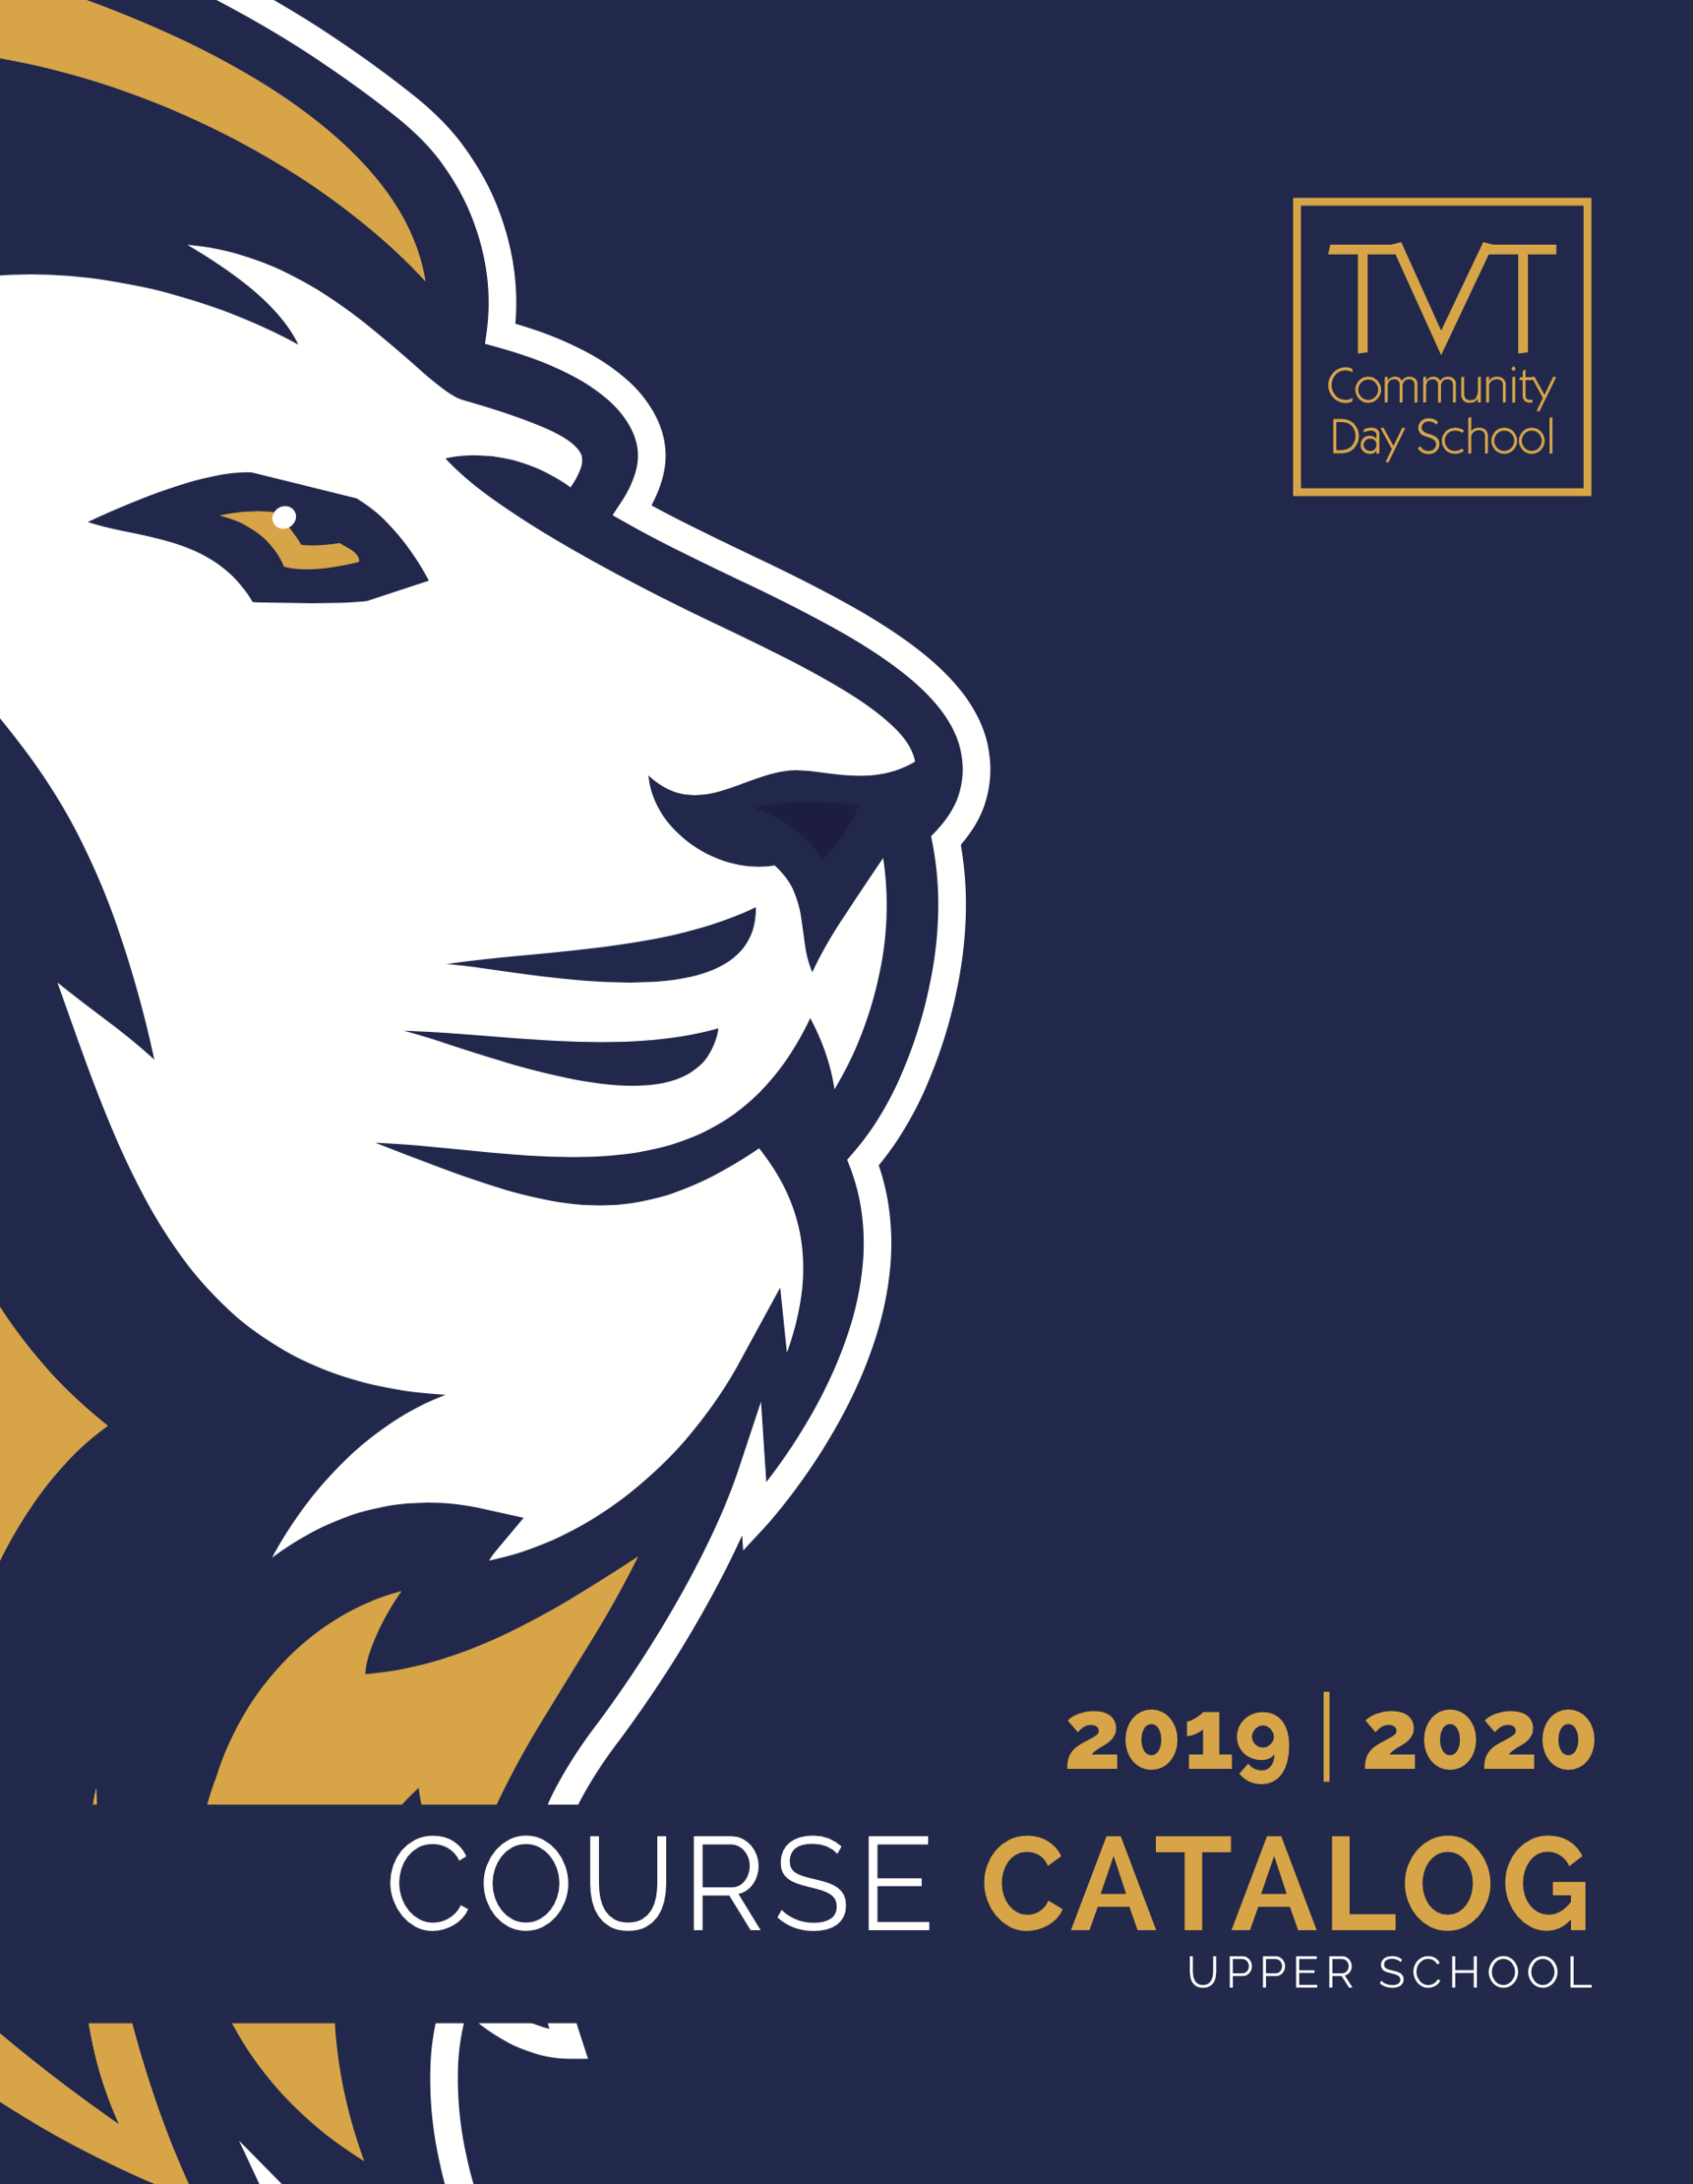 Download the Upper School Course Catalog